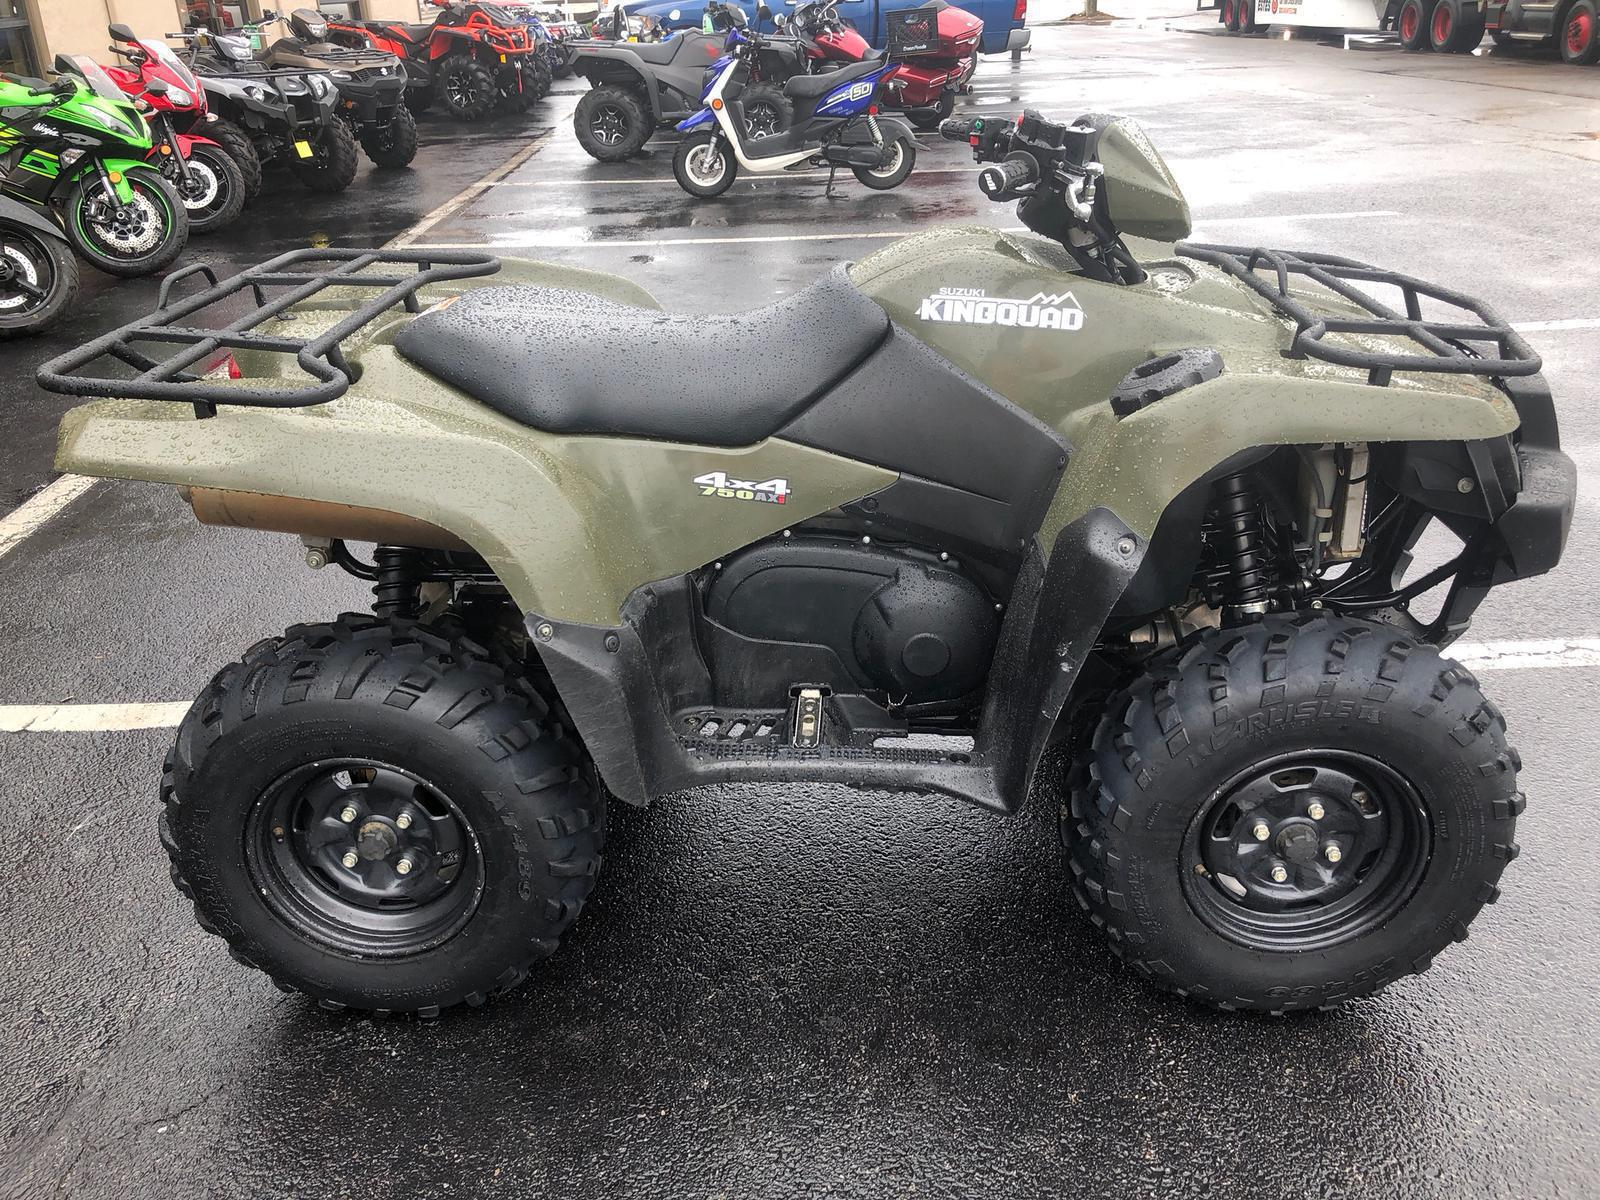 hight resolution of 2010 suzuki kingquad 750axi eps review photos motorcycle usa stock image terra green 2016